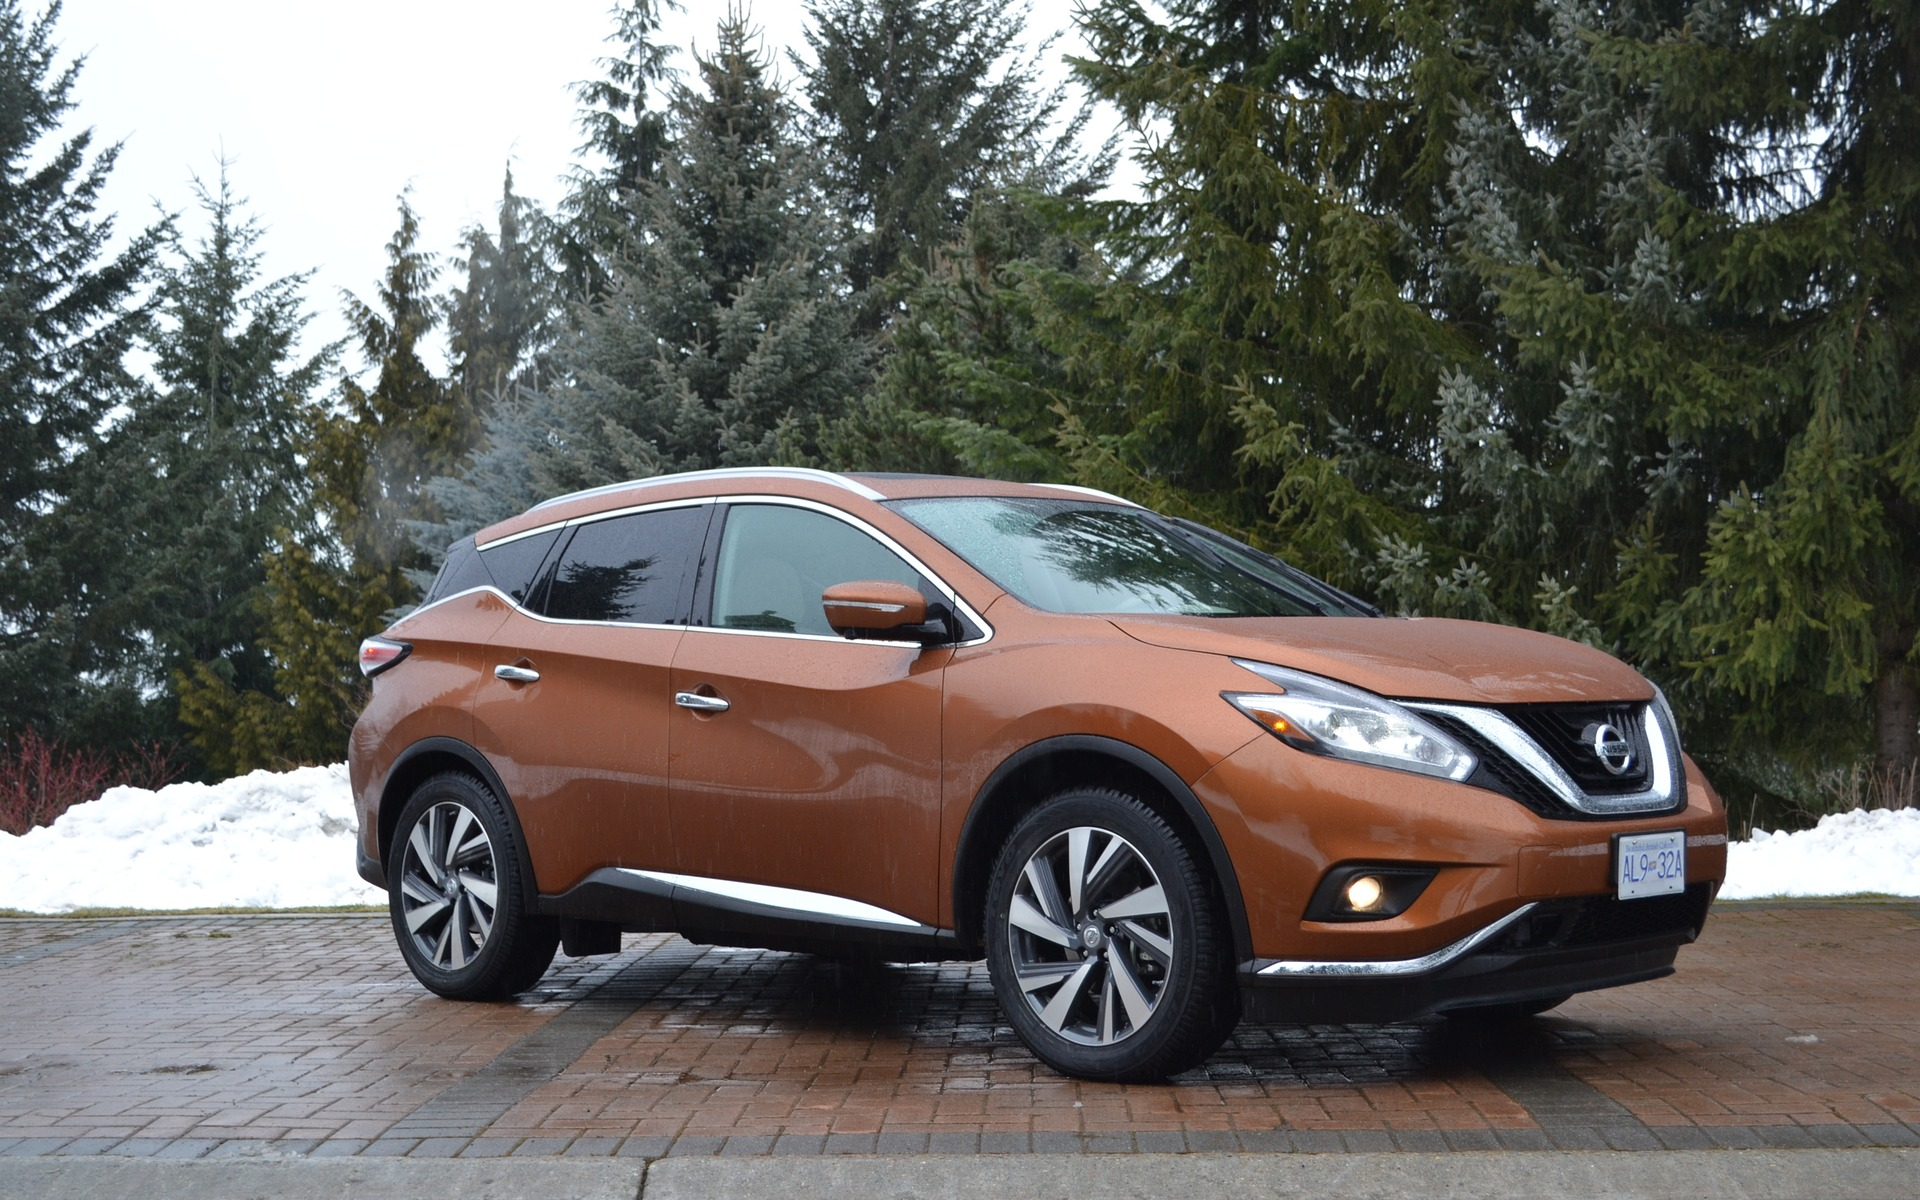 2015 nissan murano reaching for the top the car guide. Black Bedroom Furniture Sets. Home Design Ideas